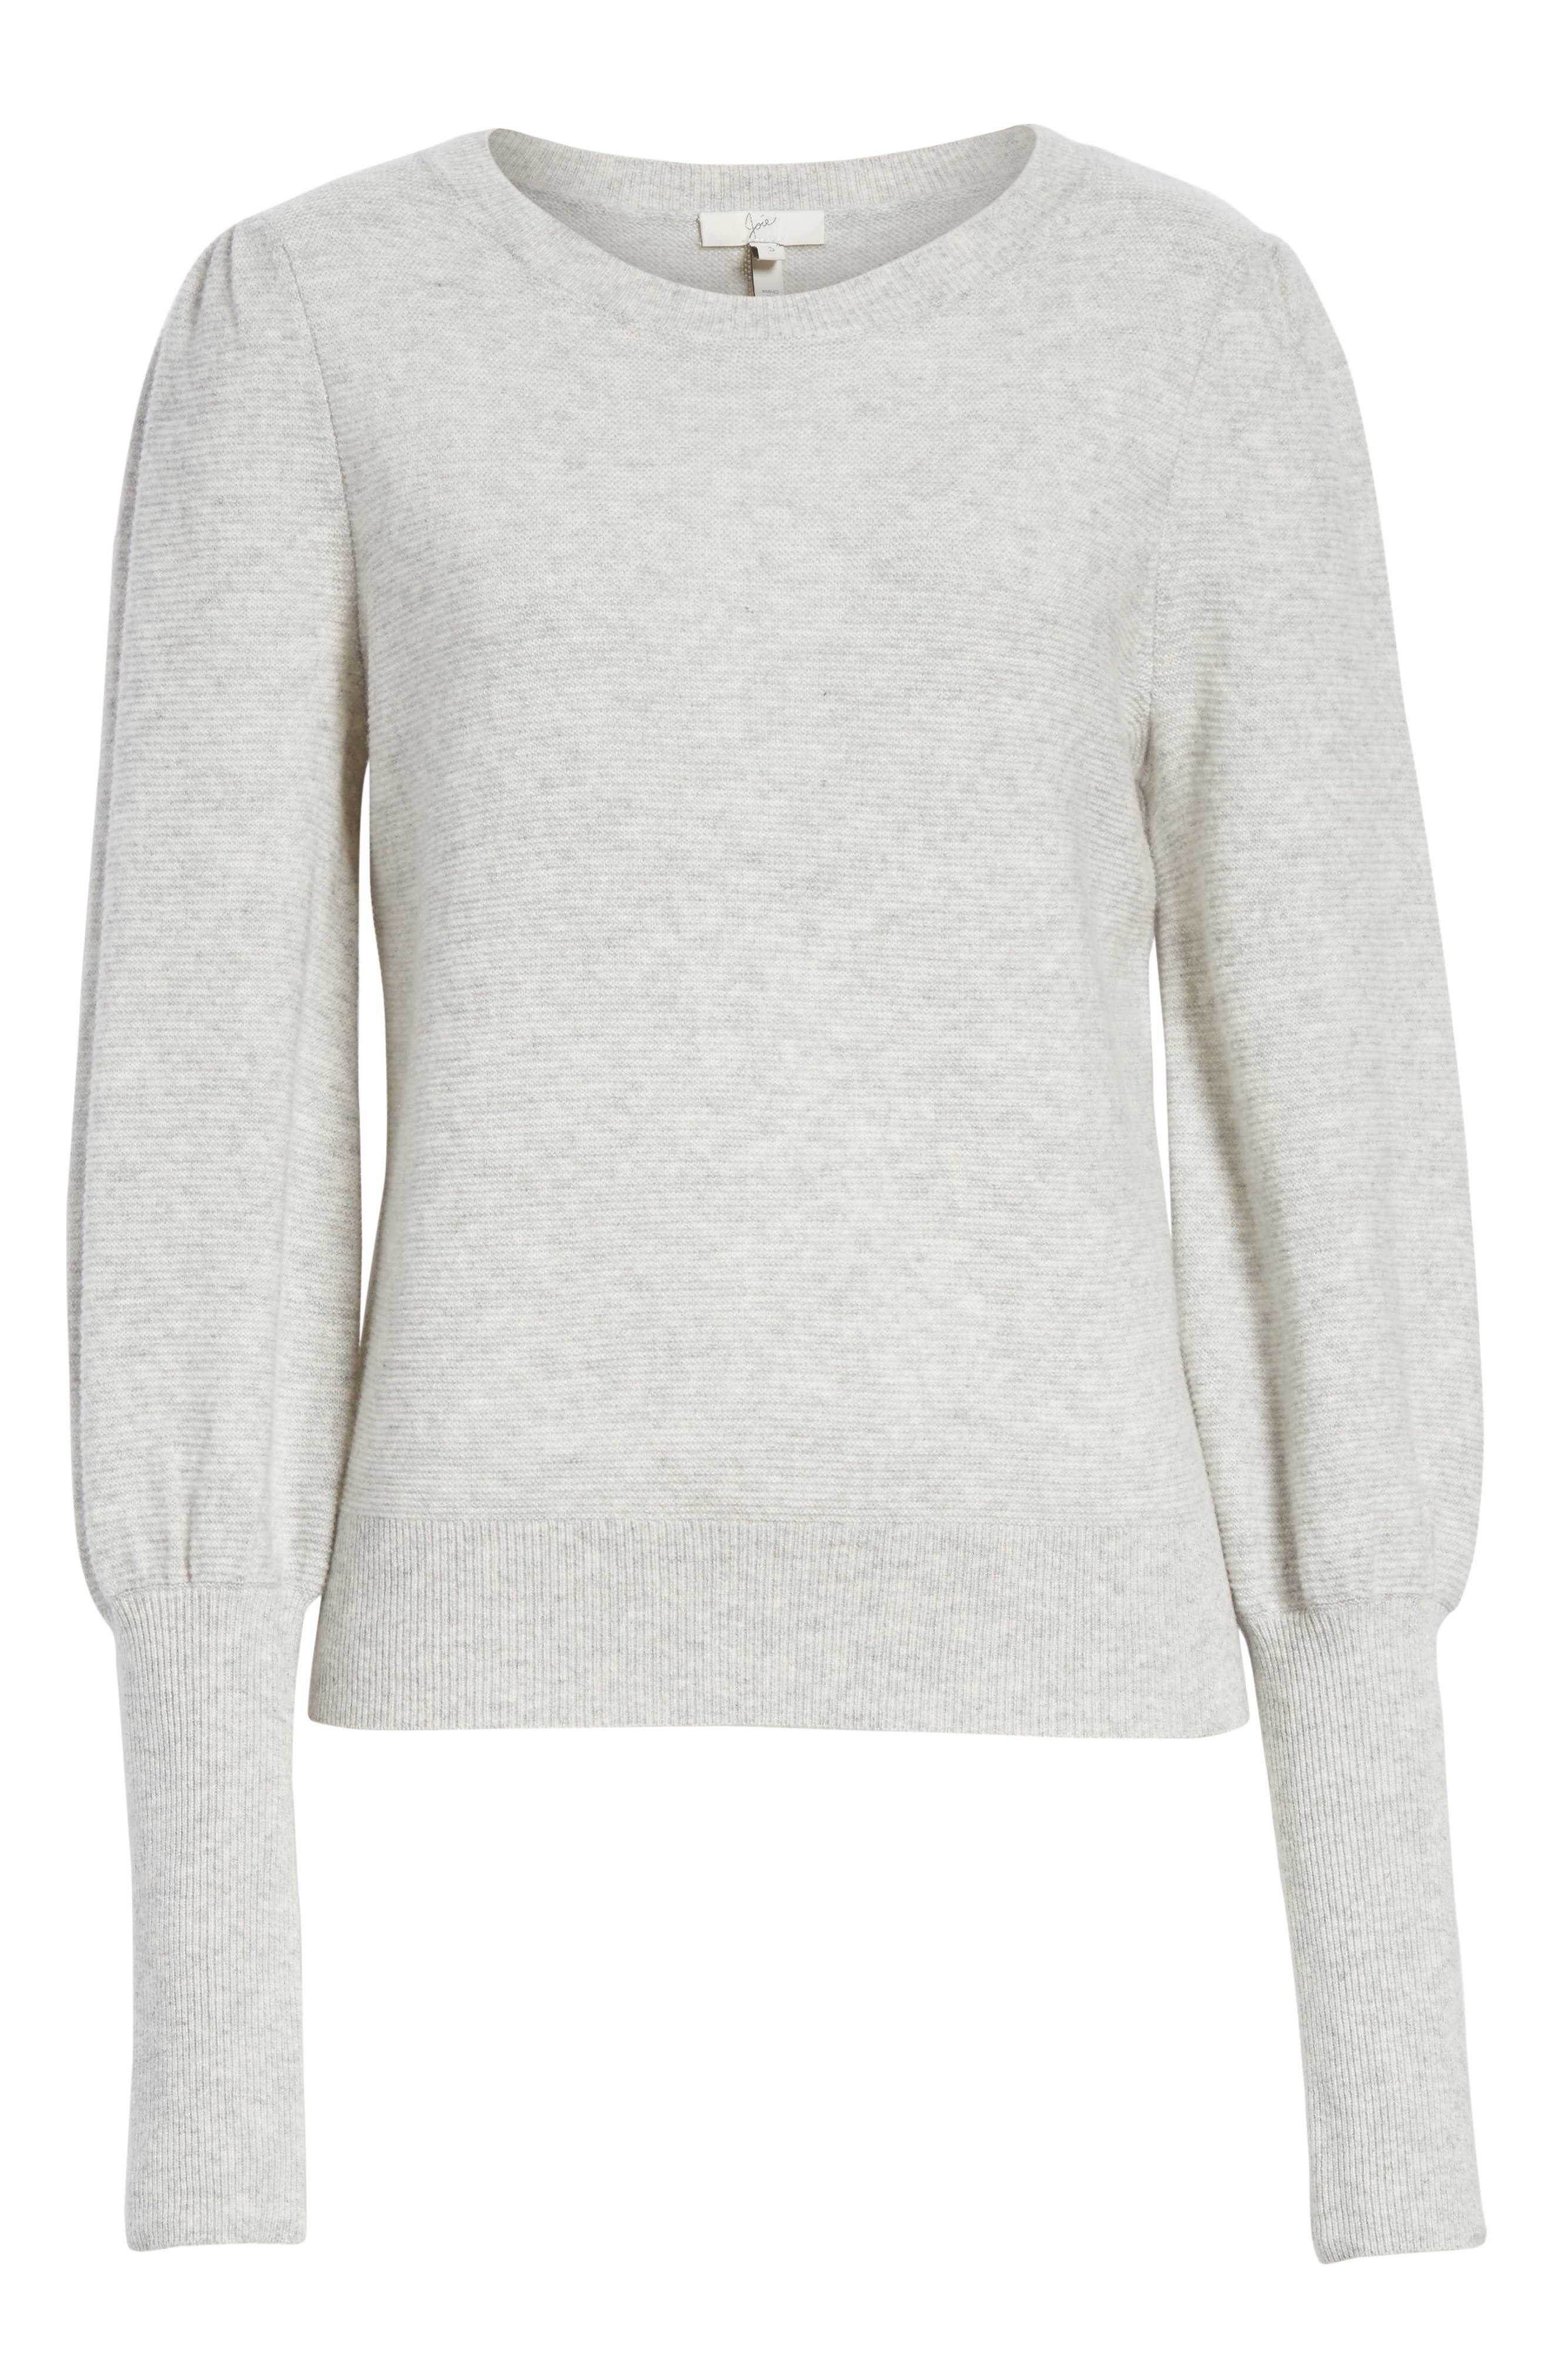 Noely Wool and Cashmere Sweater,                             Alternate thumbnail 6, color,                             Light Heather Grey